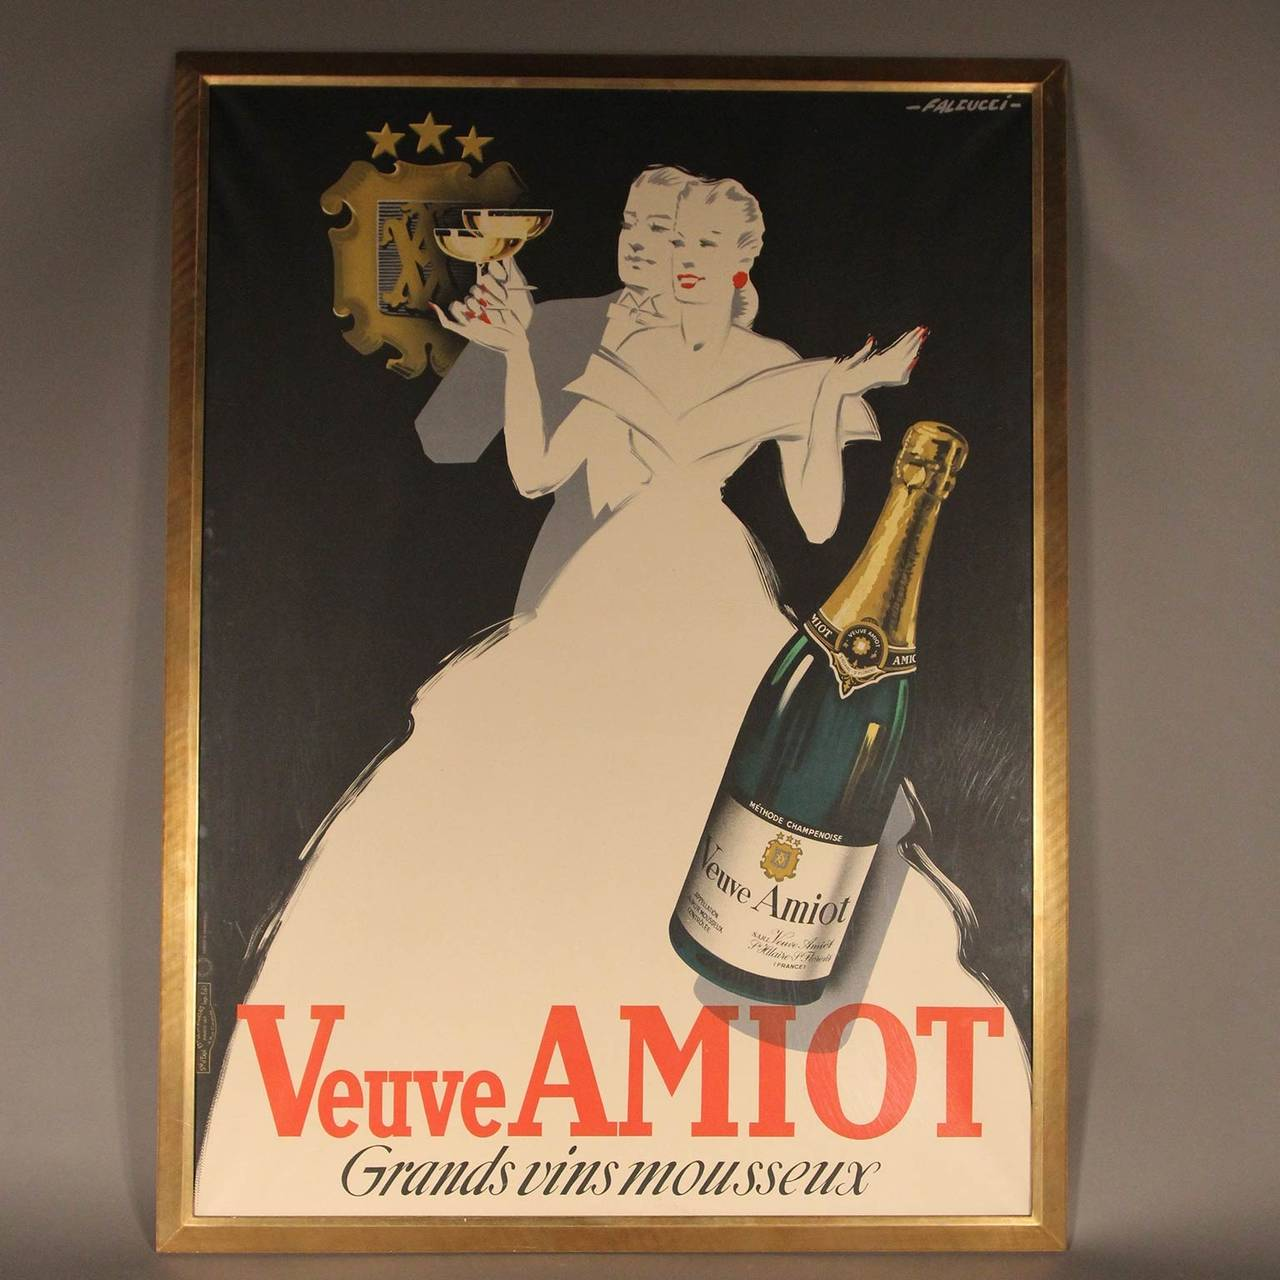 Beautiful full side Veuve Amiot Grands Vins Mousseux French champagne poster with impeccable gold framing behind plexiglass. Linen backed original 1936. Illustrated by Robert Falcucci (1900-1982).